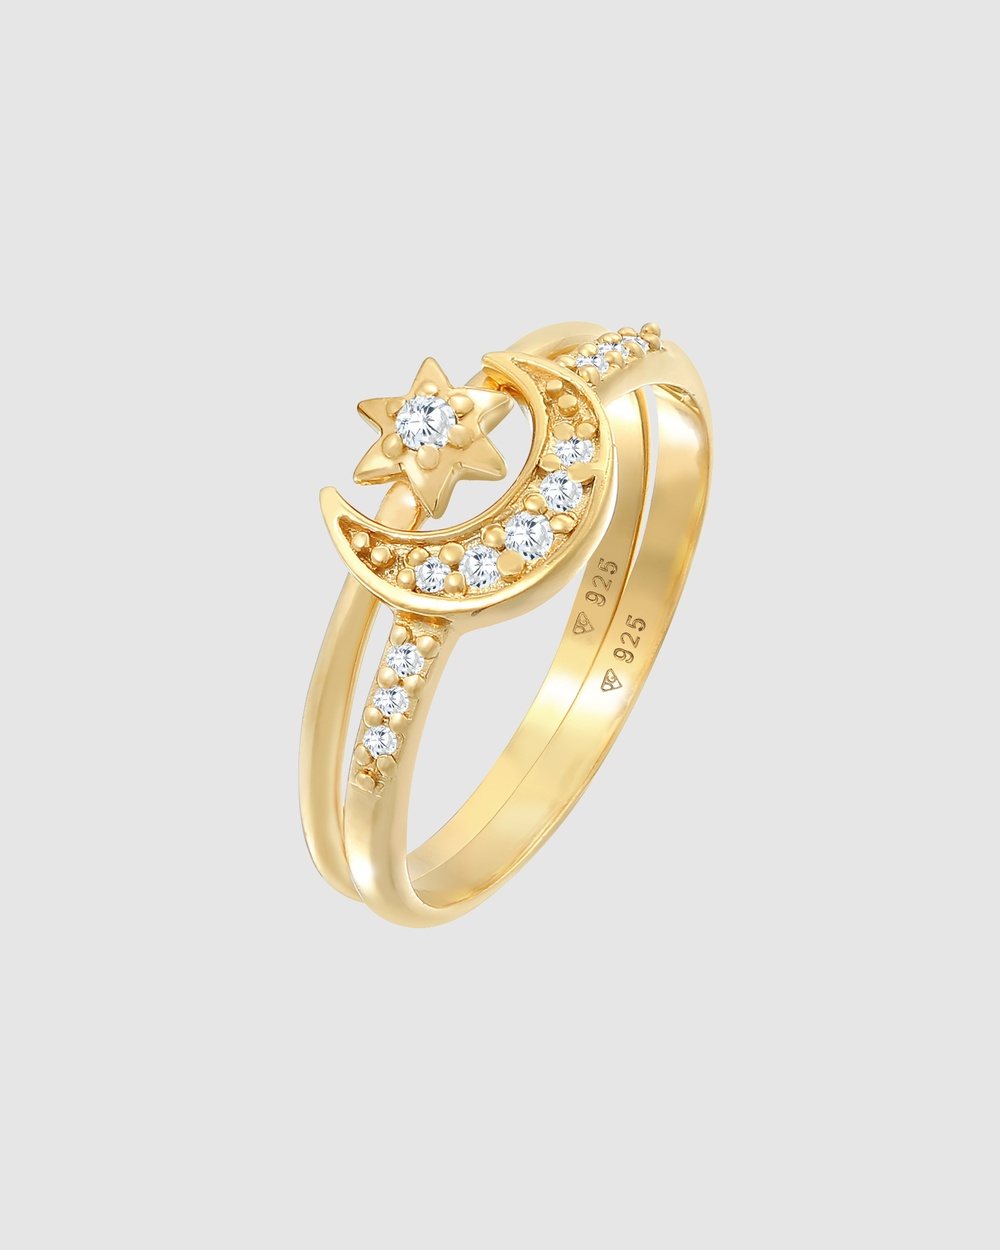 Elli Jewelry Ring Stacking Set Star Astro Trend with Zirconia Crystals in 925 Sterling Silver Gold Plated Jewellery Gold